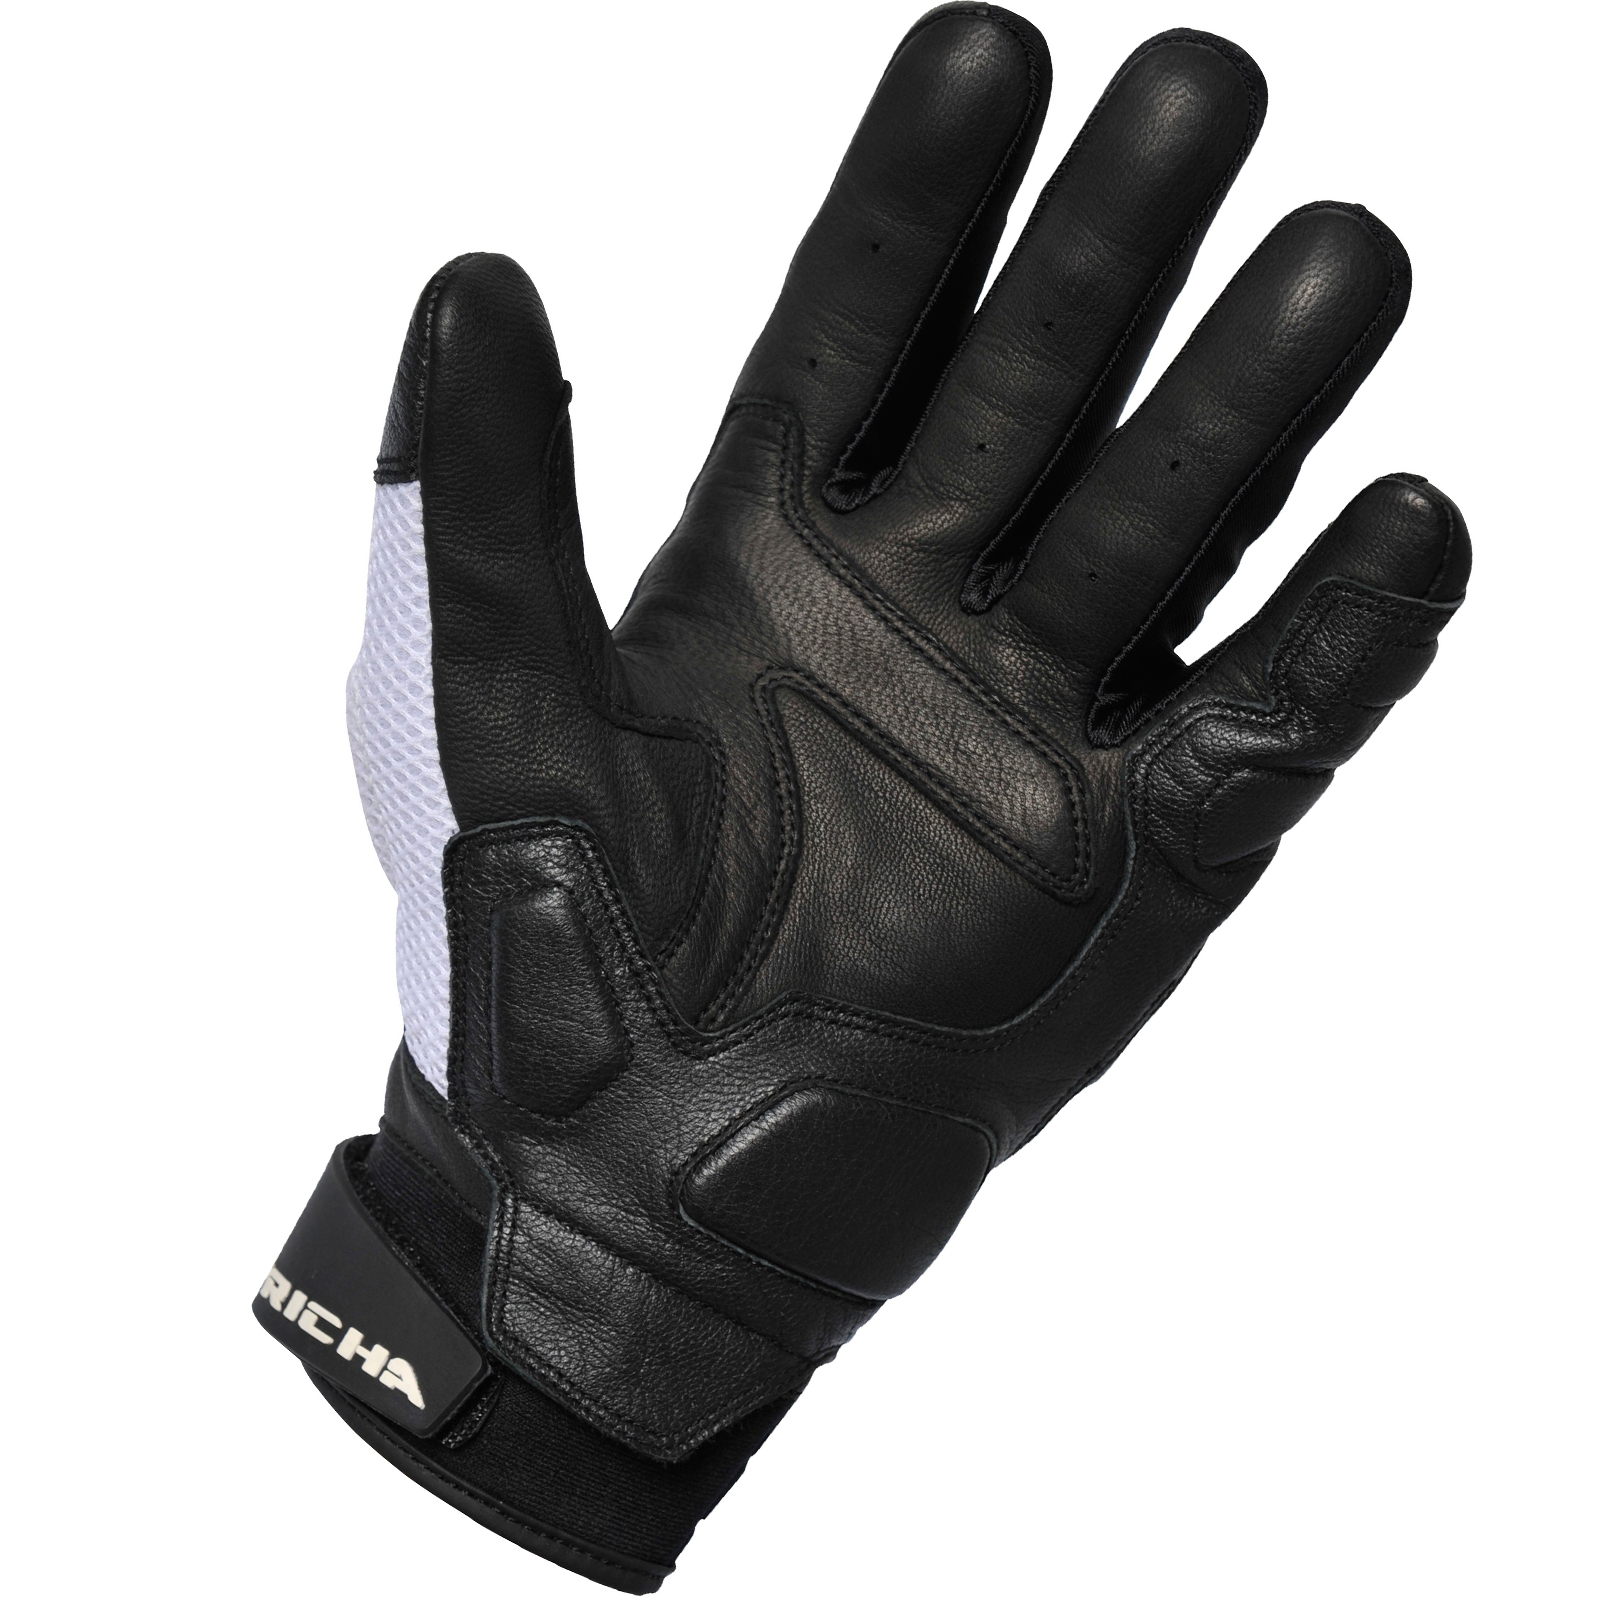 Motorcycle gloves mesh - Richa Torsion Motorcycle Gloves Leather Air Guard Mesh